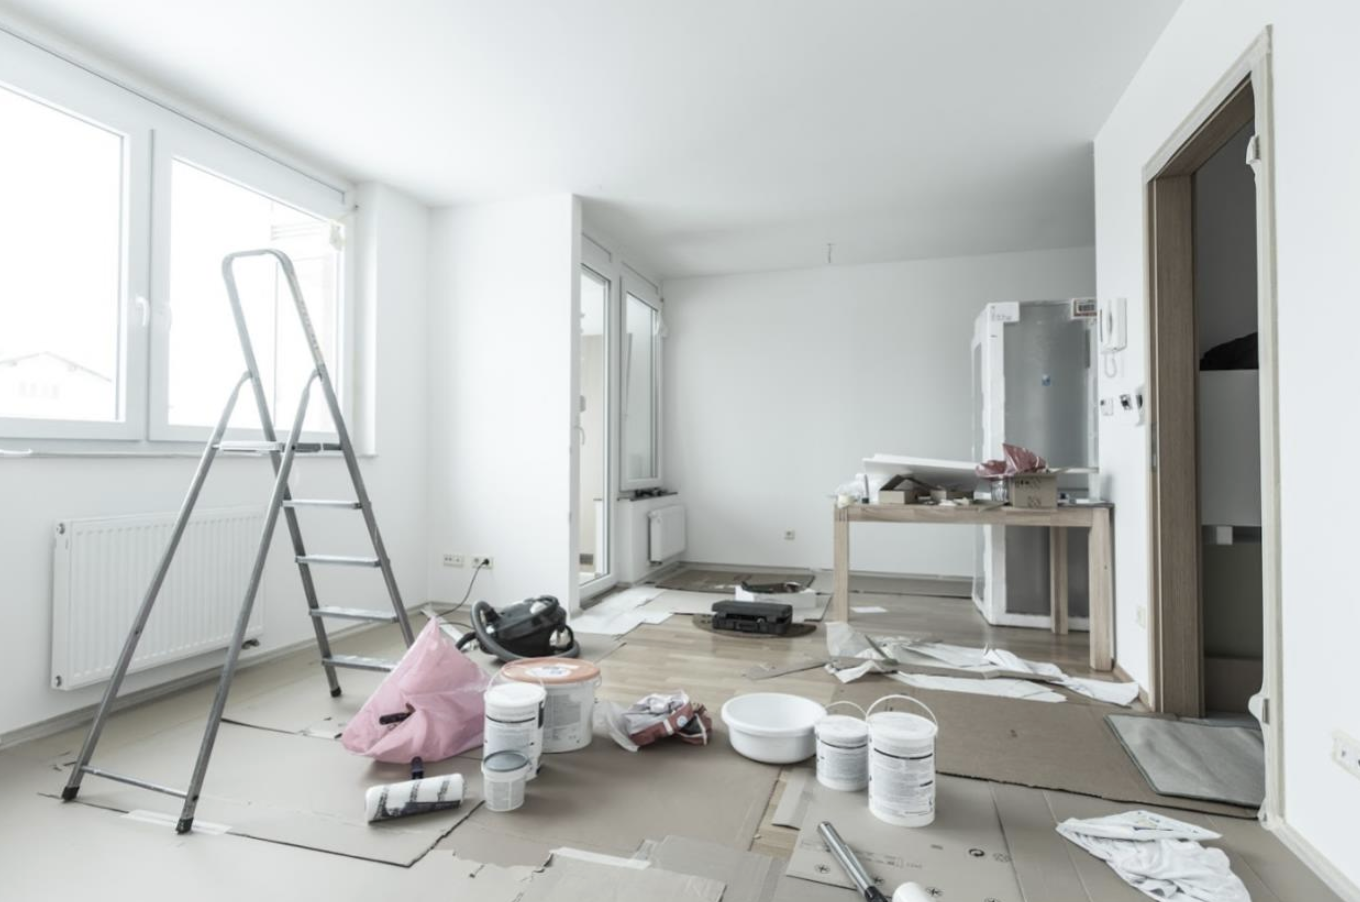 San Diego homeowners are remodeling their homes. Find out how you can keep air quality inside clean during a remodel.